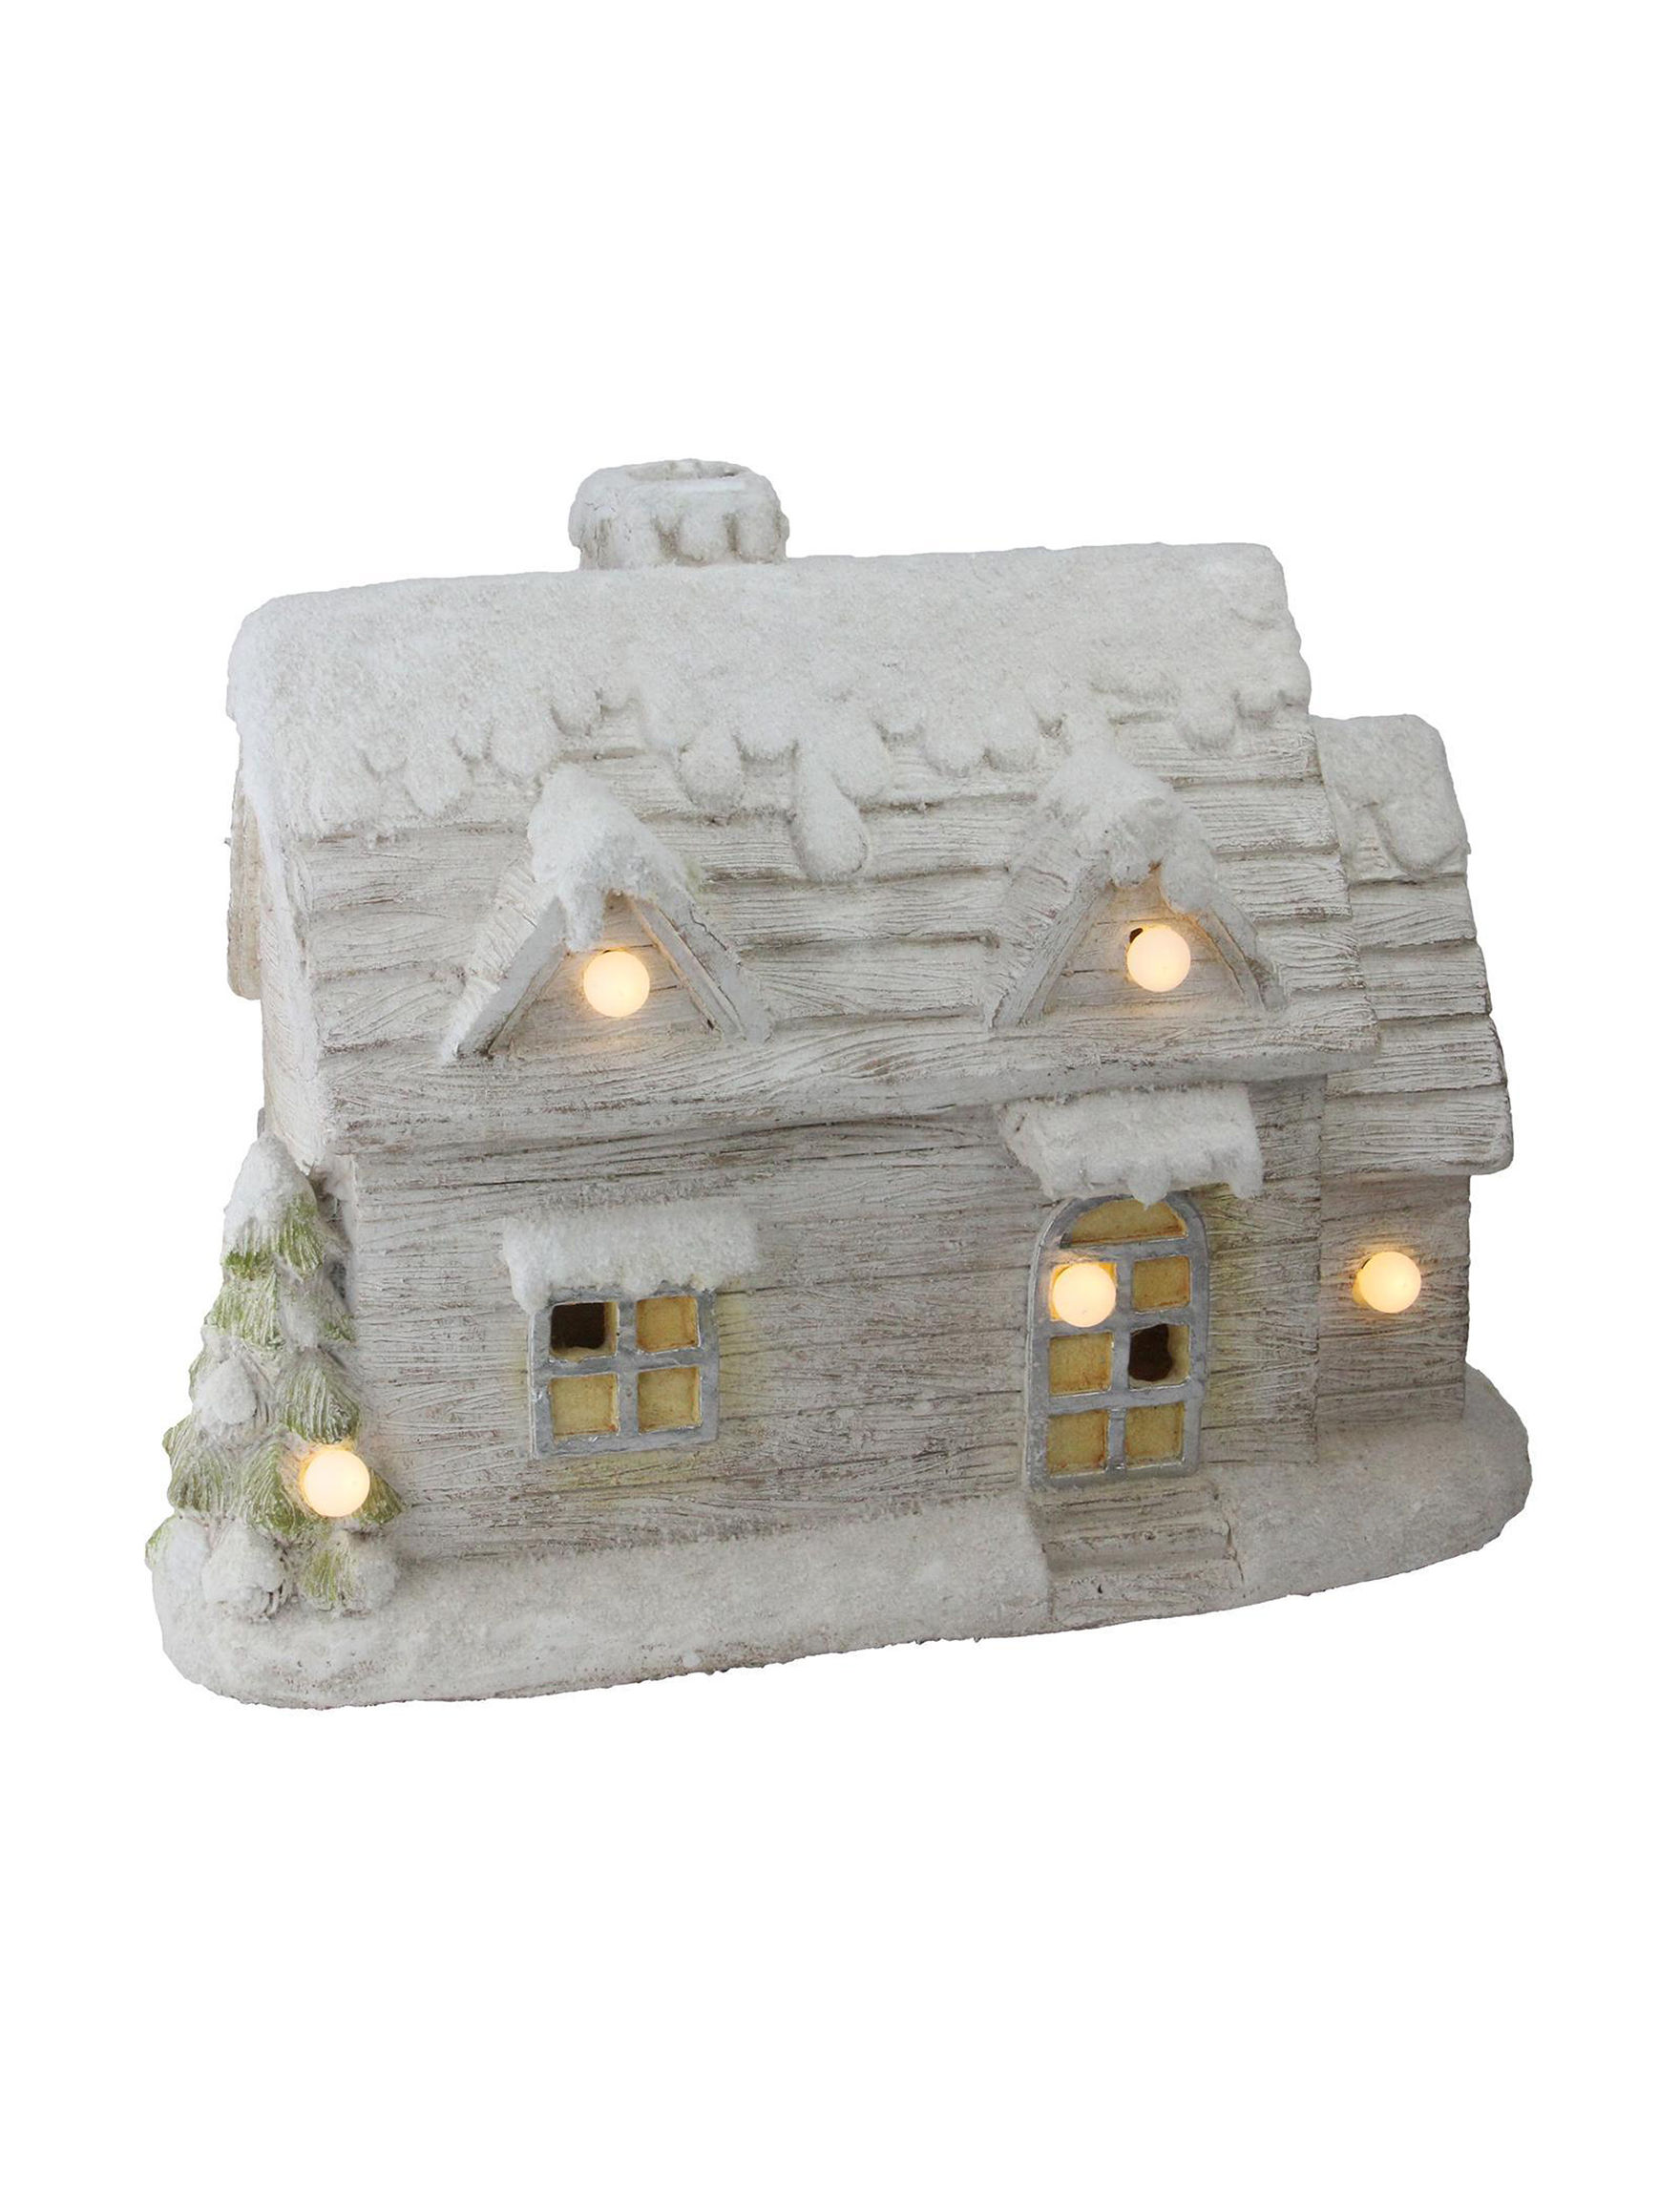 Northlight Grey Decorative Objects Holiday Decor Home Accents